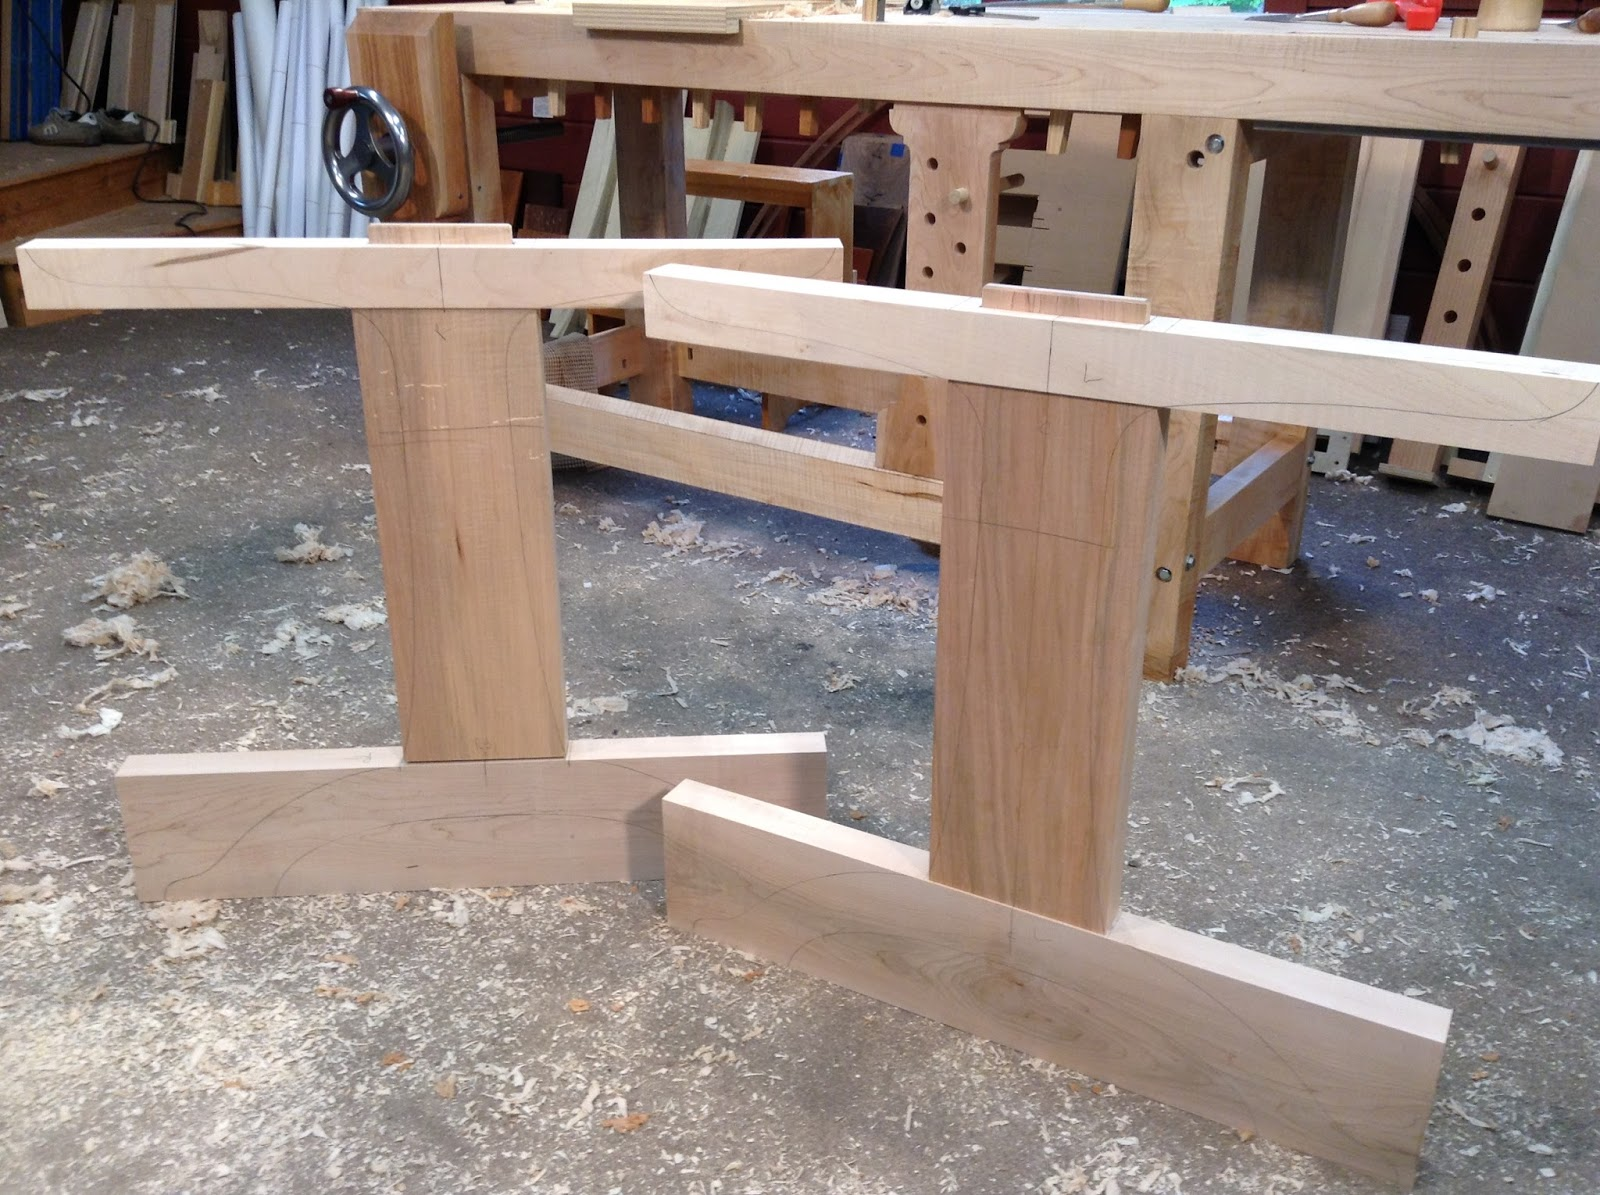 trestle table base before shaping